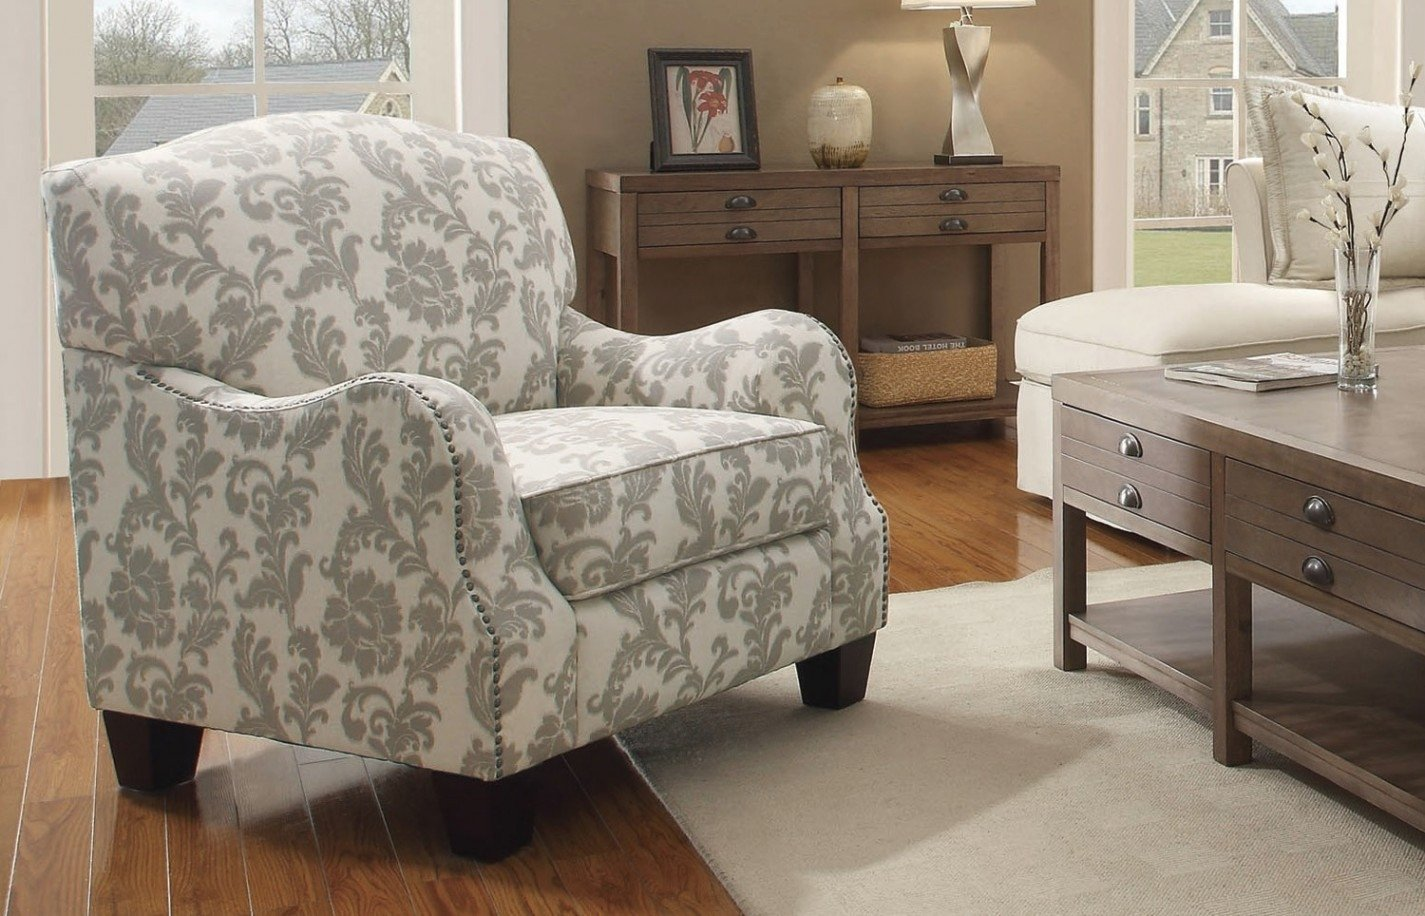 Comfortable Living Room Furniture 25 Of fortable Accent Chair for Small Space